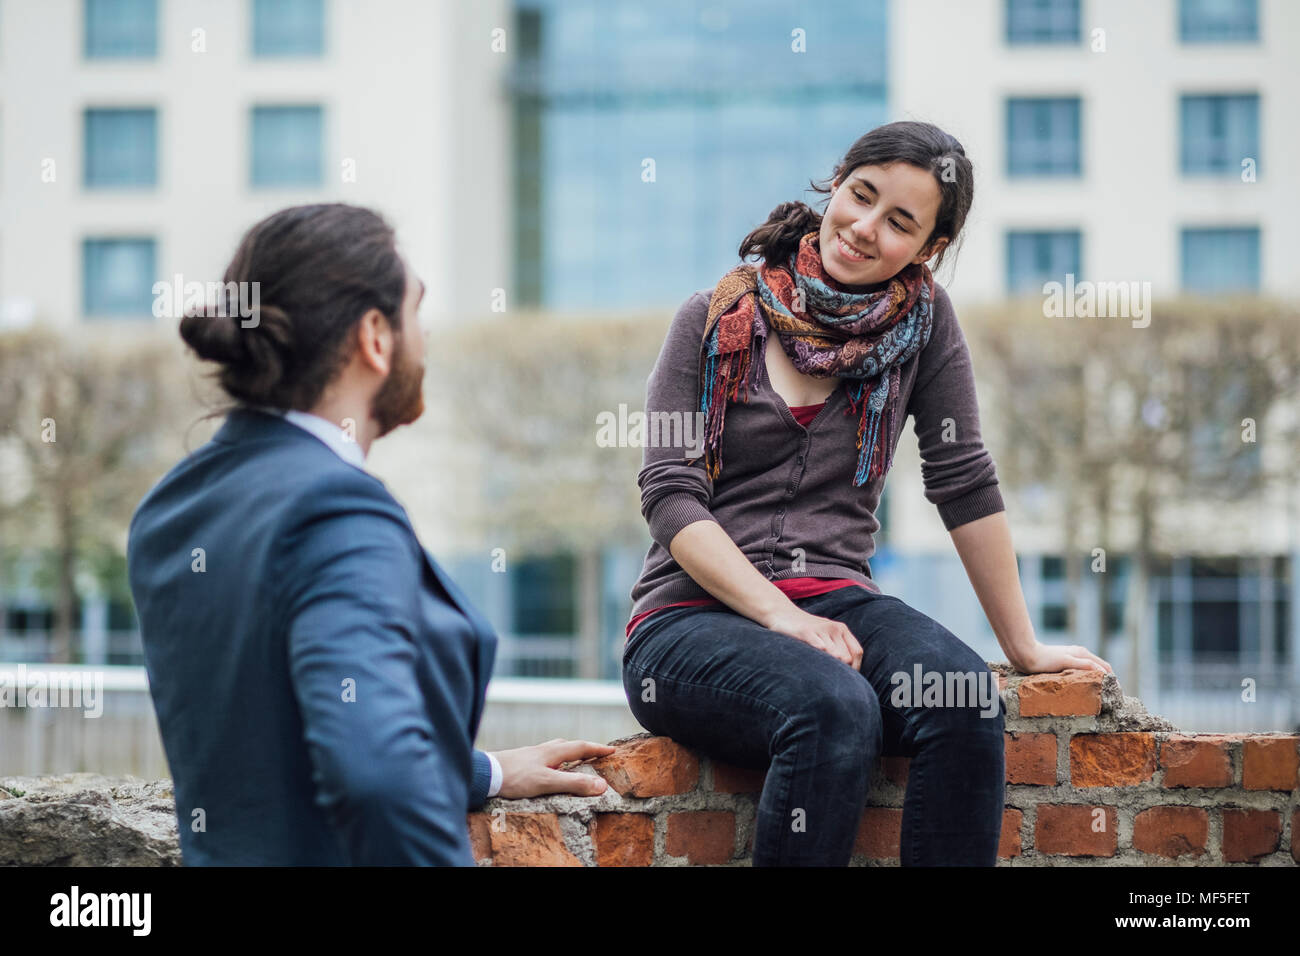 Woman sitting on a wall outside office building smiling at businessman - Stock Image